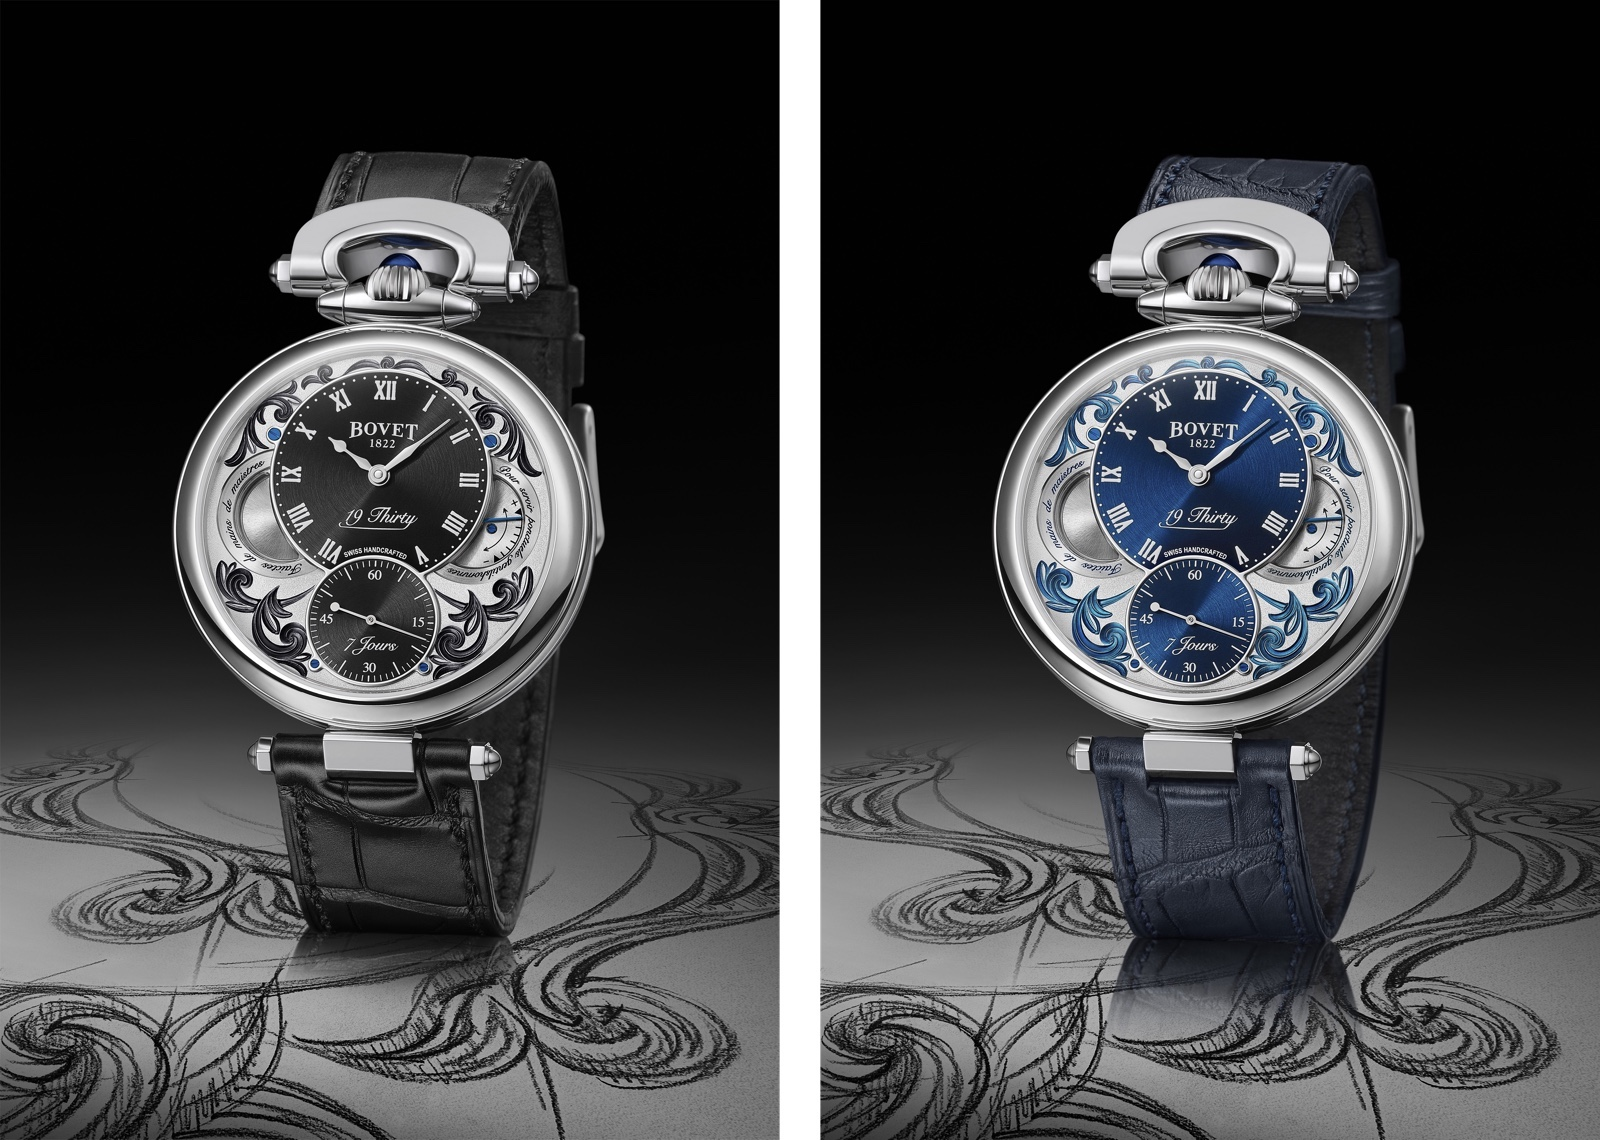 Bovet 1822 19Thirty Fleurisanne lacquered